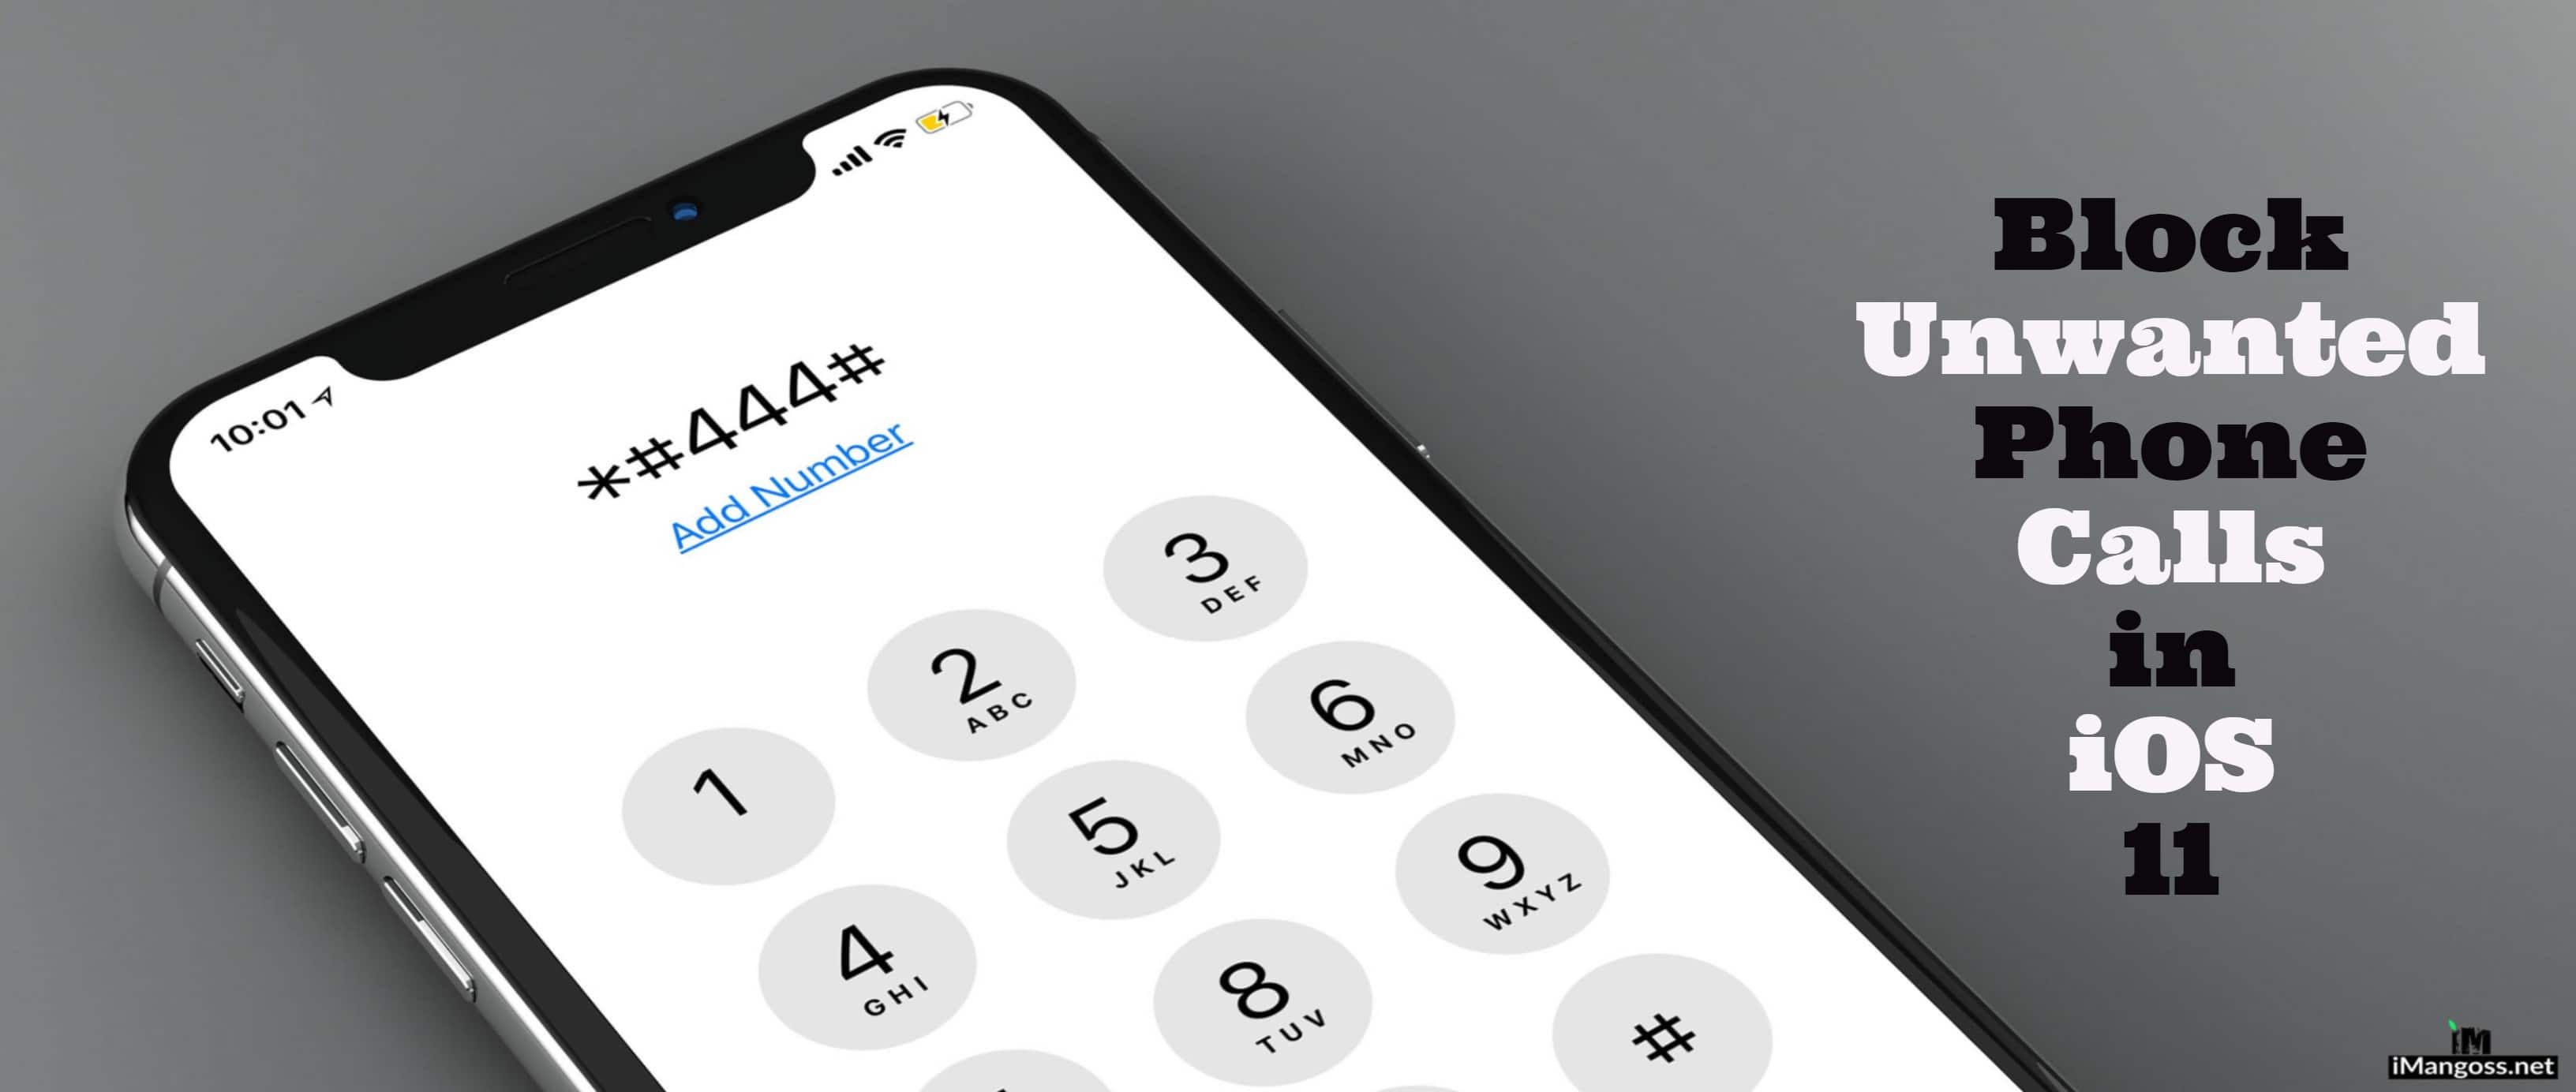 Block Unwanted Phone Calls in iOS 11